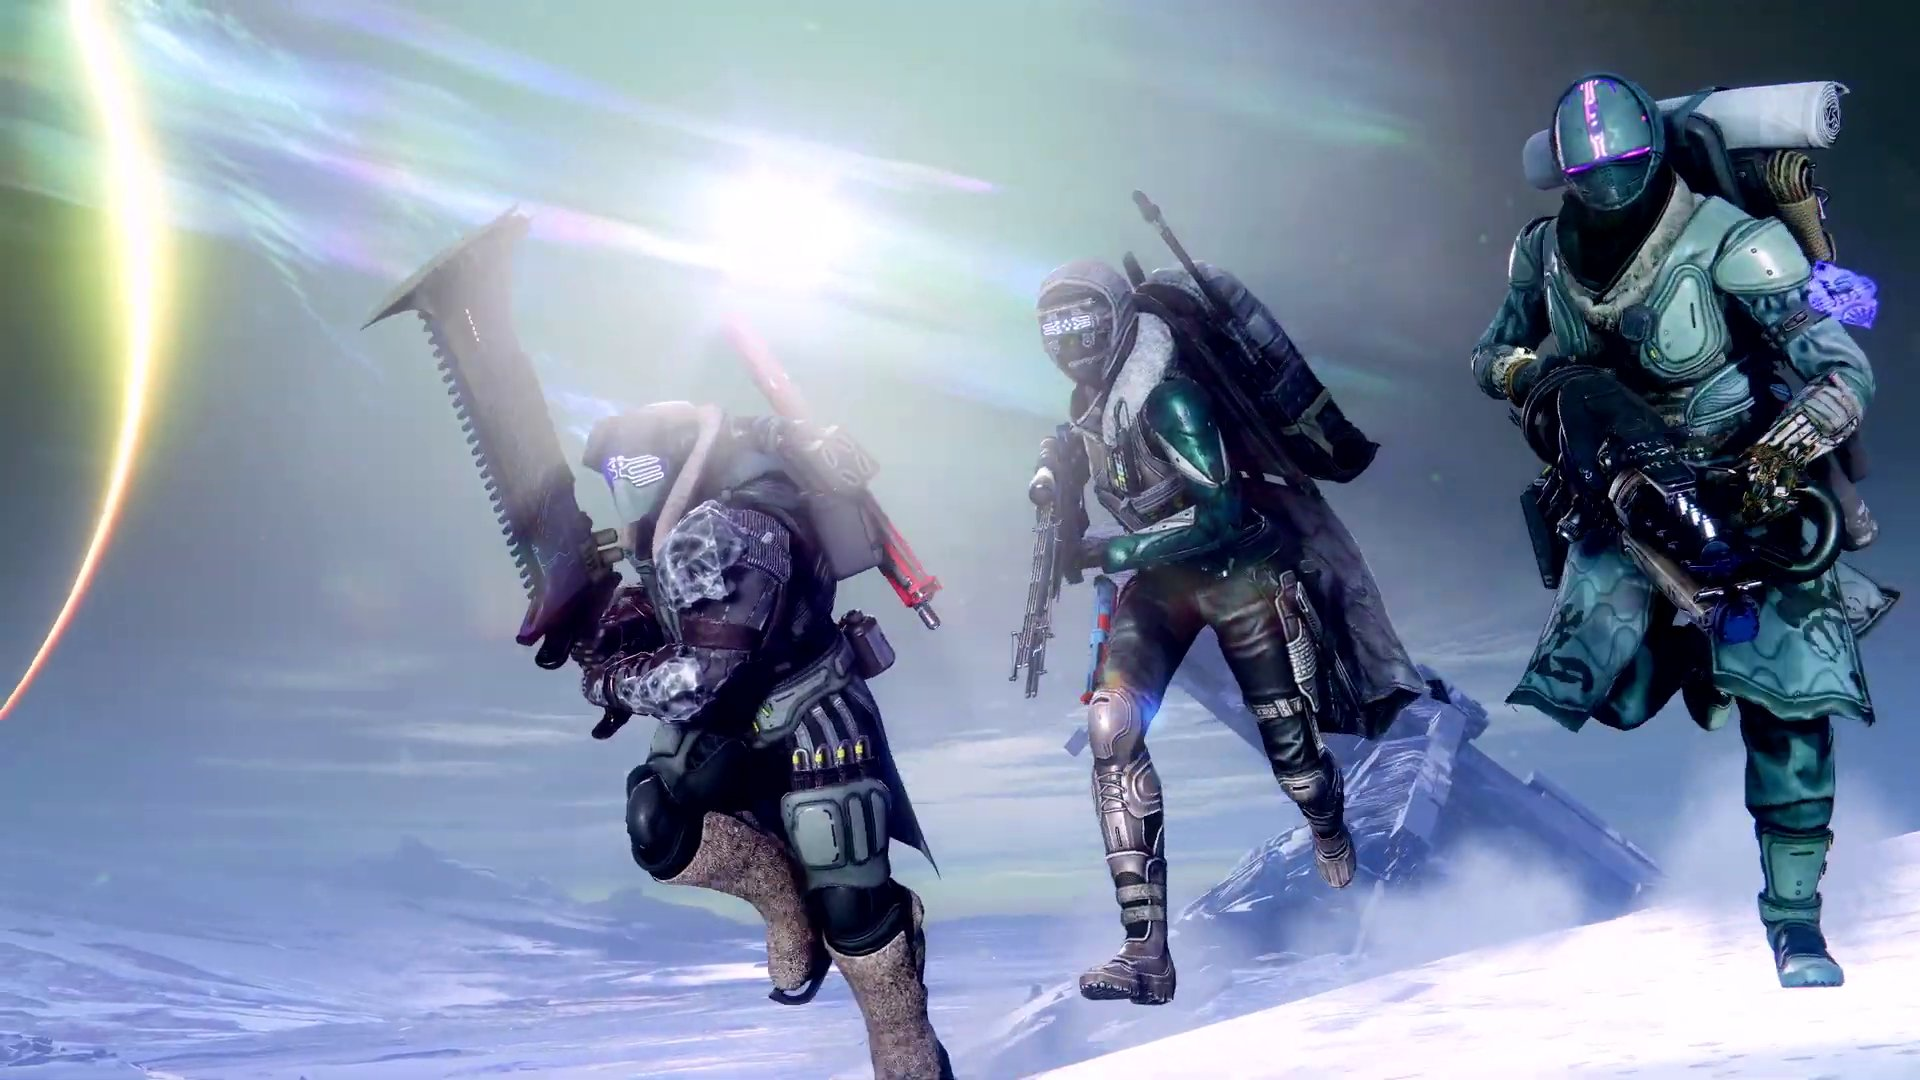 A frame from a Destiny 2: Beyond Light trailer showing the new Exotic gear.